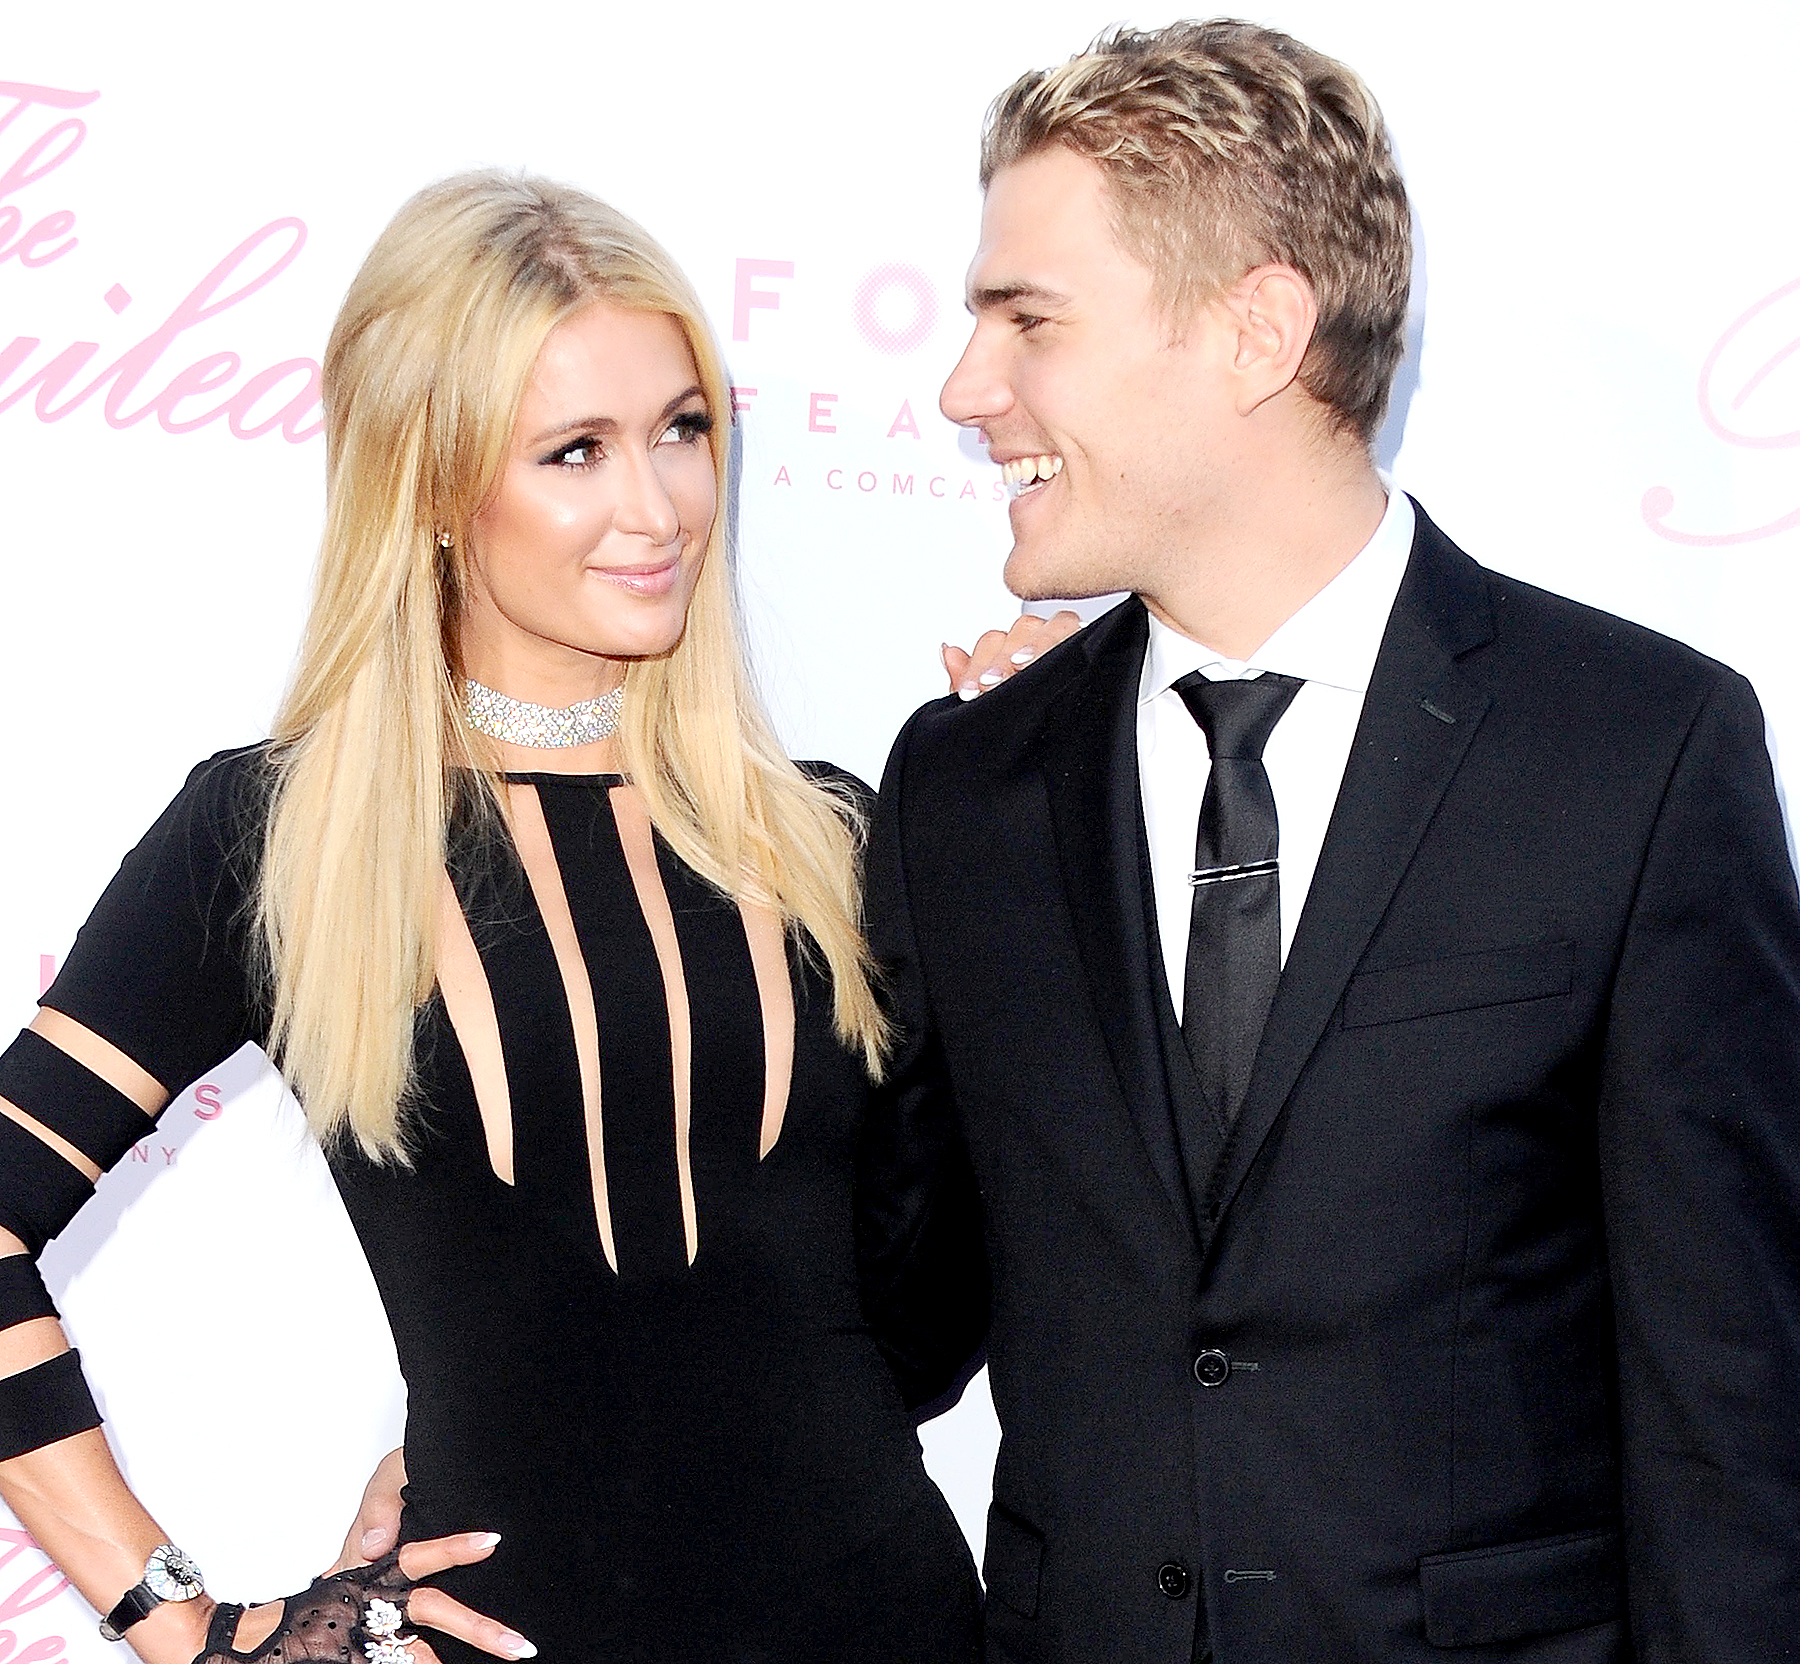 Paris Hilton's Boyfriend Surprised Her With a Paris Name Tattoo and It's So Damn Cute You Might Just Vomit